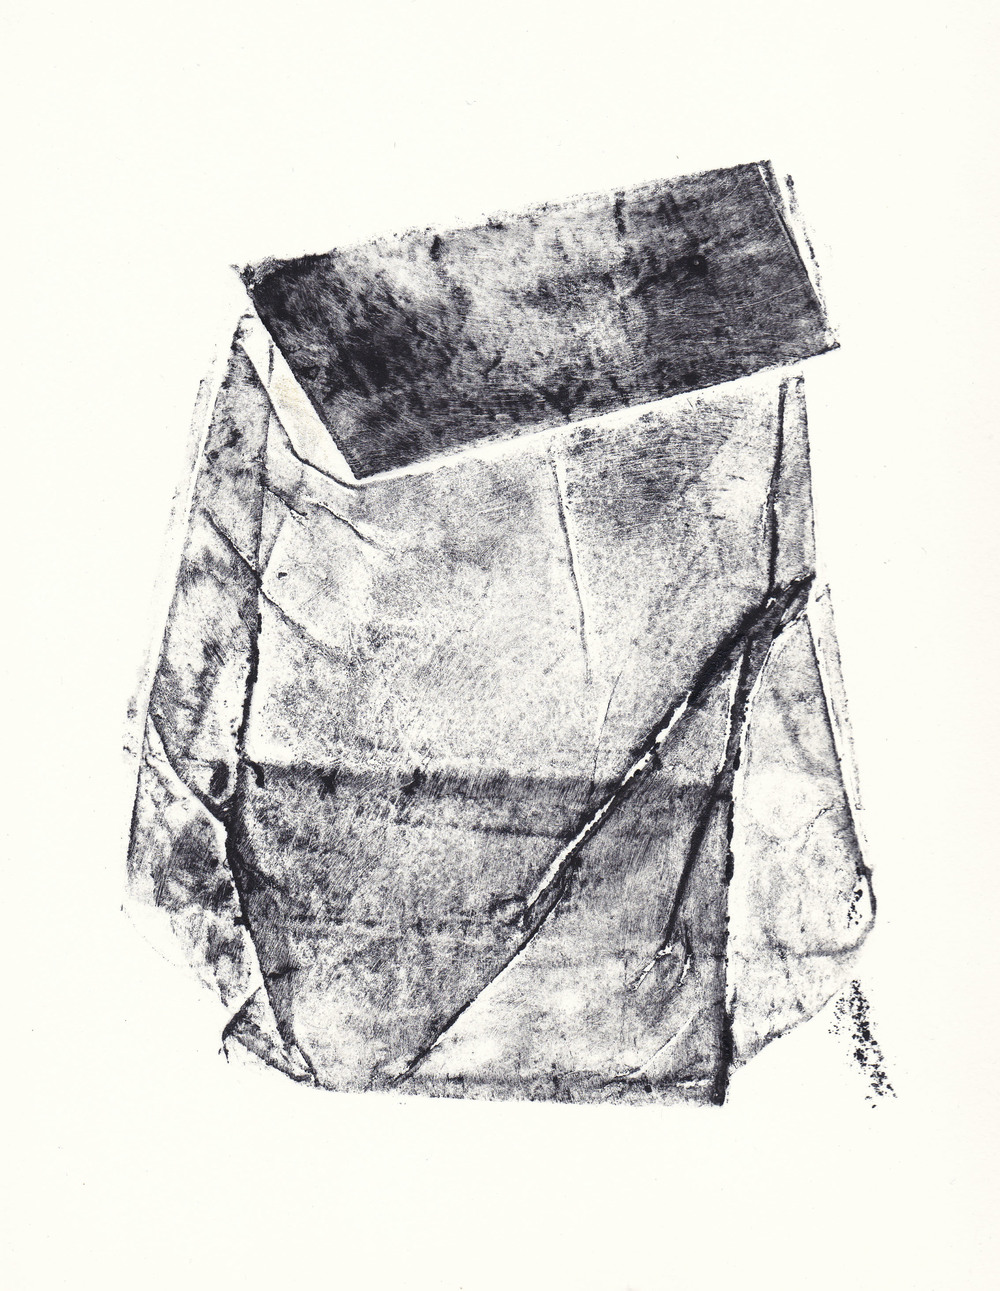 Topography of a Flour Bag III   collagraph print  2012